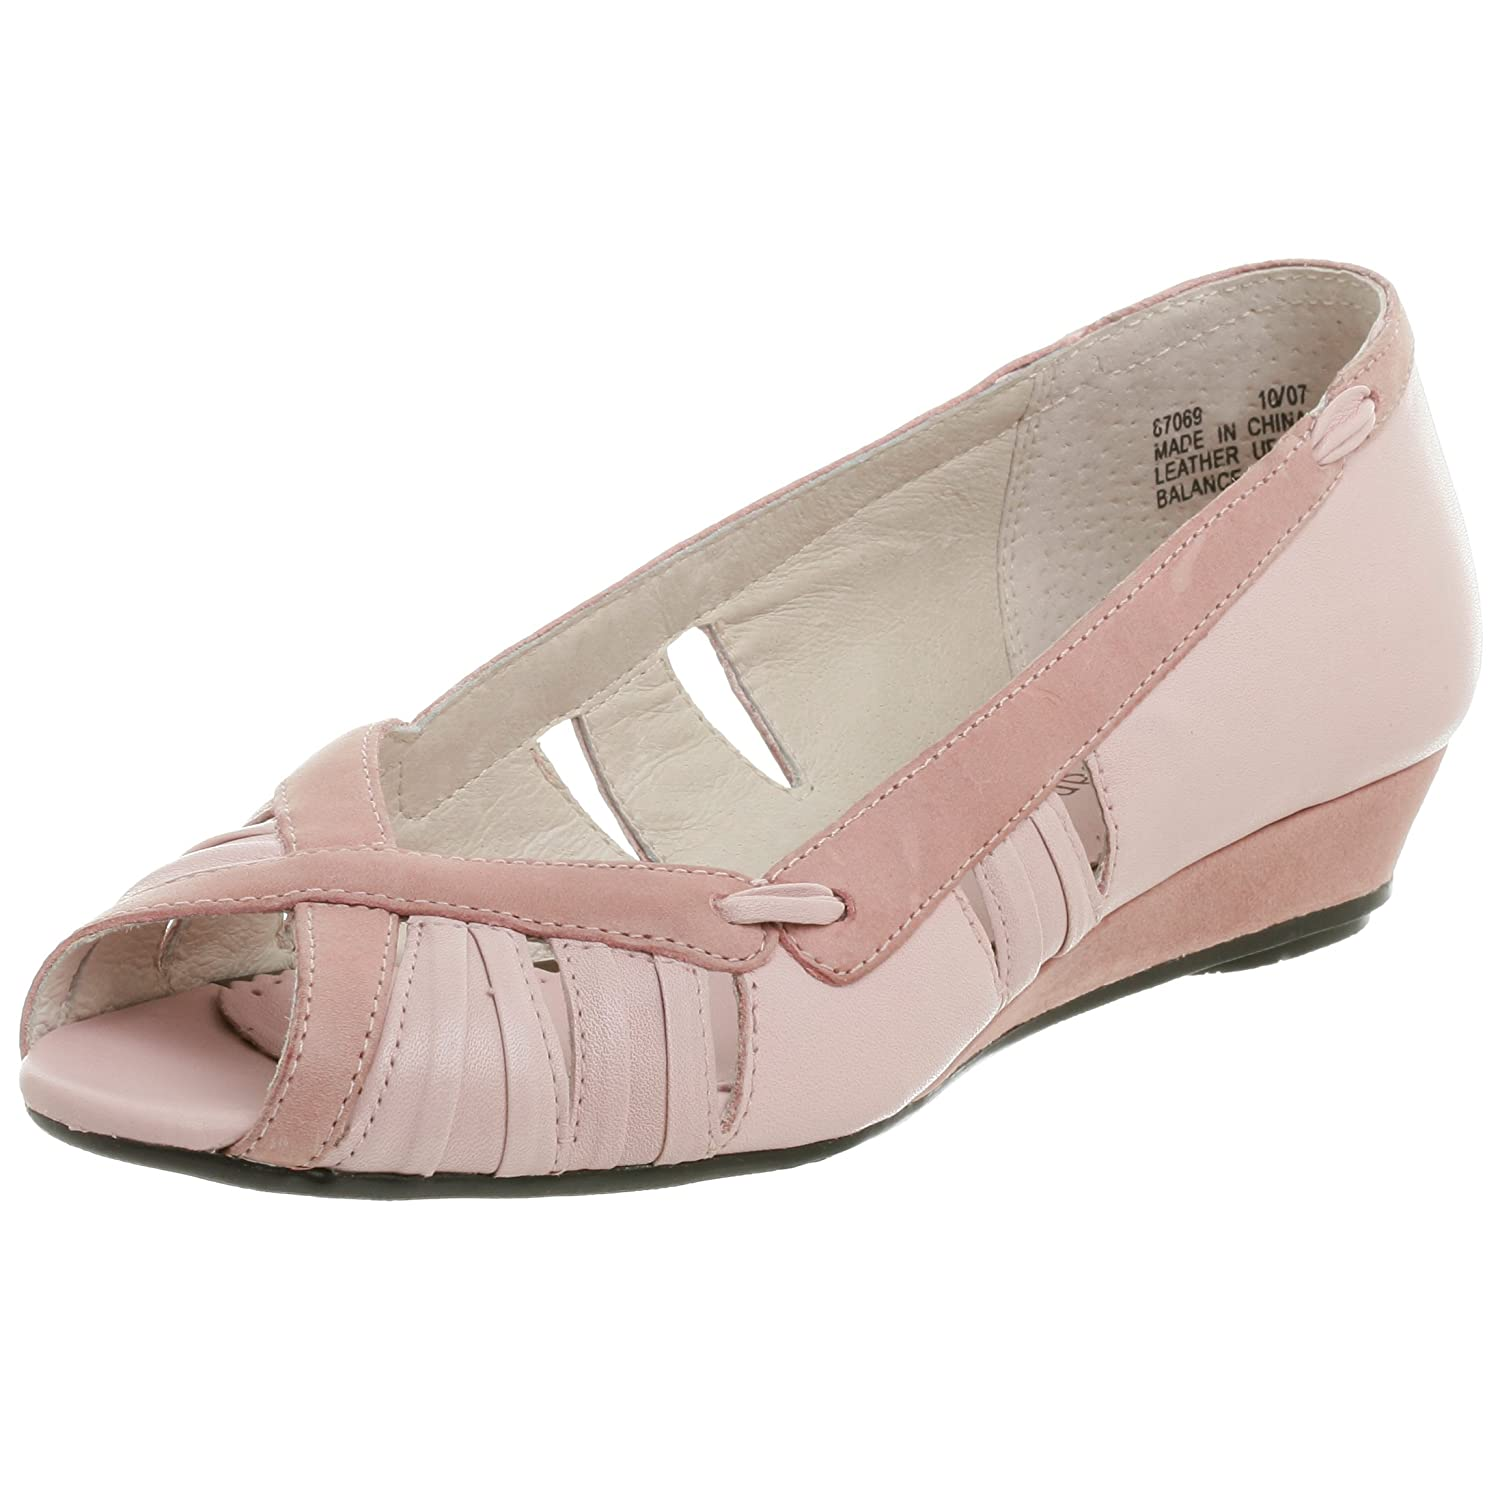 Clarks Women's Essen Wedge - Free Overnight Shipping & Return Shipping: Endless.com